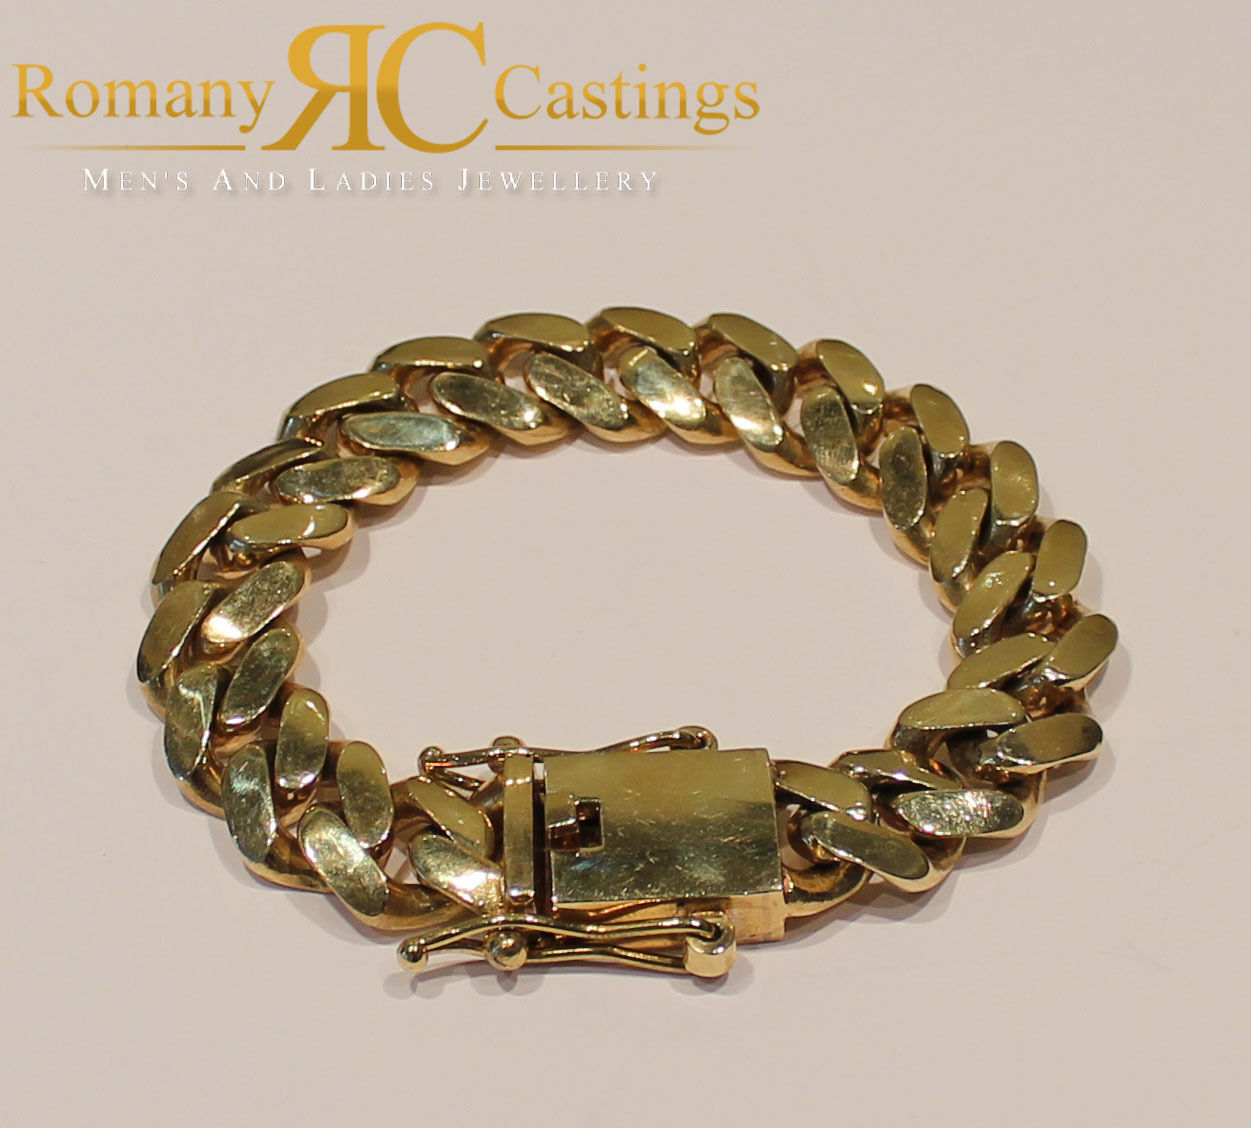 8.5 INCH Rapper Curb Link  Bracelet  Jewellers Bronze Dipped in 9ct gold 90g